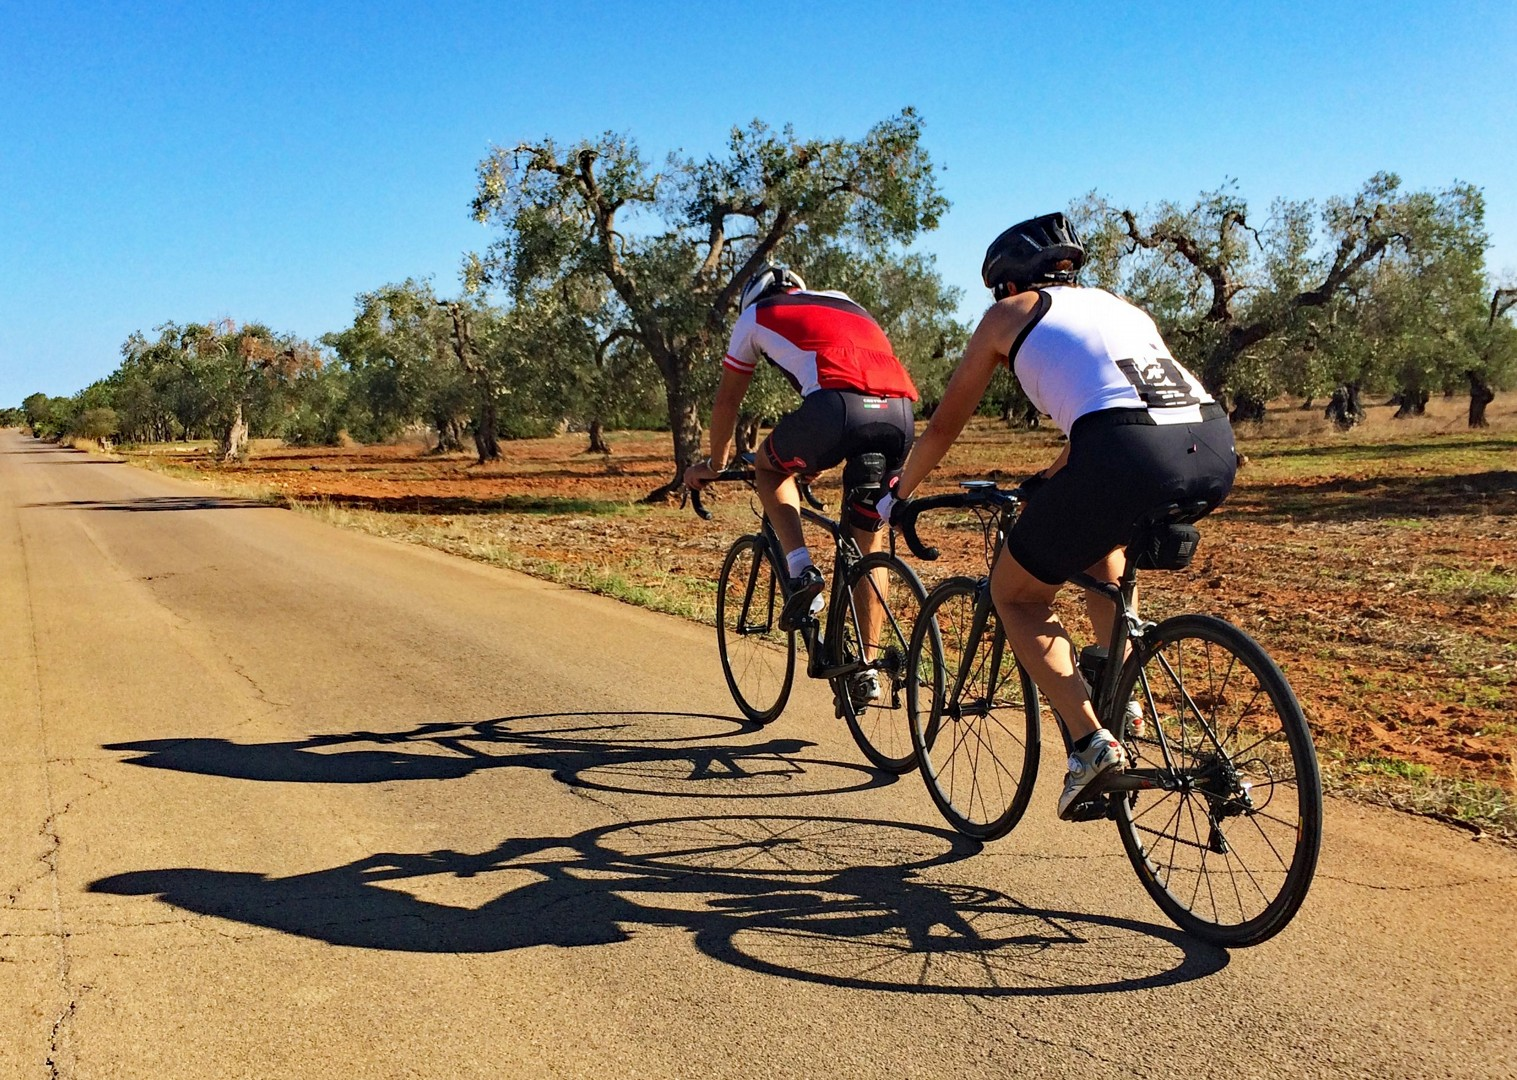 north-to-south-cycling-holiday-italty.jpg - Italy - Grand Traverse - North to South - Guided Road Cycling Holiday (17 days) - Road Cycling